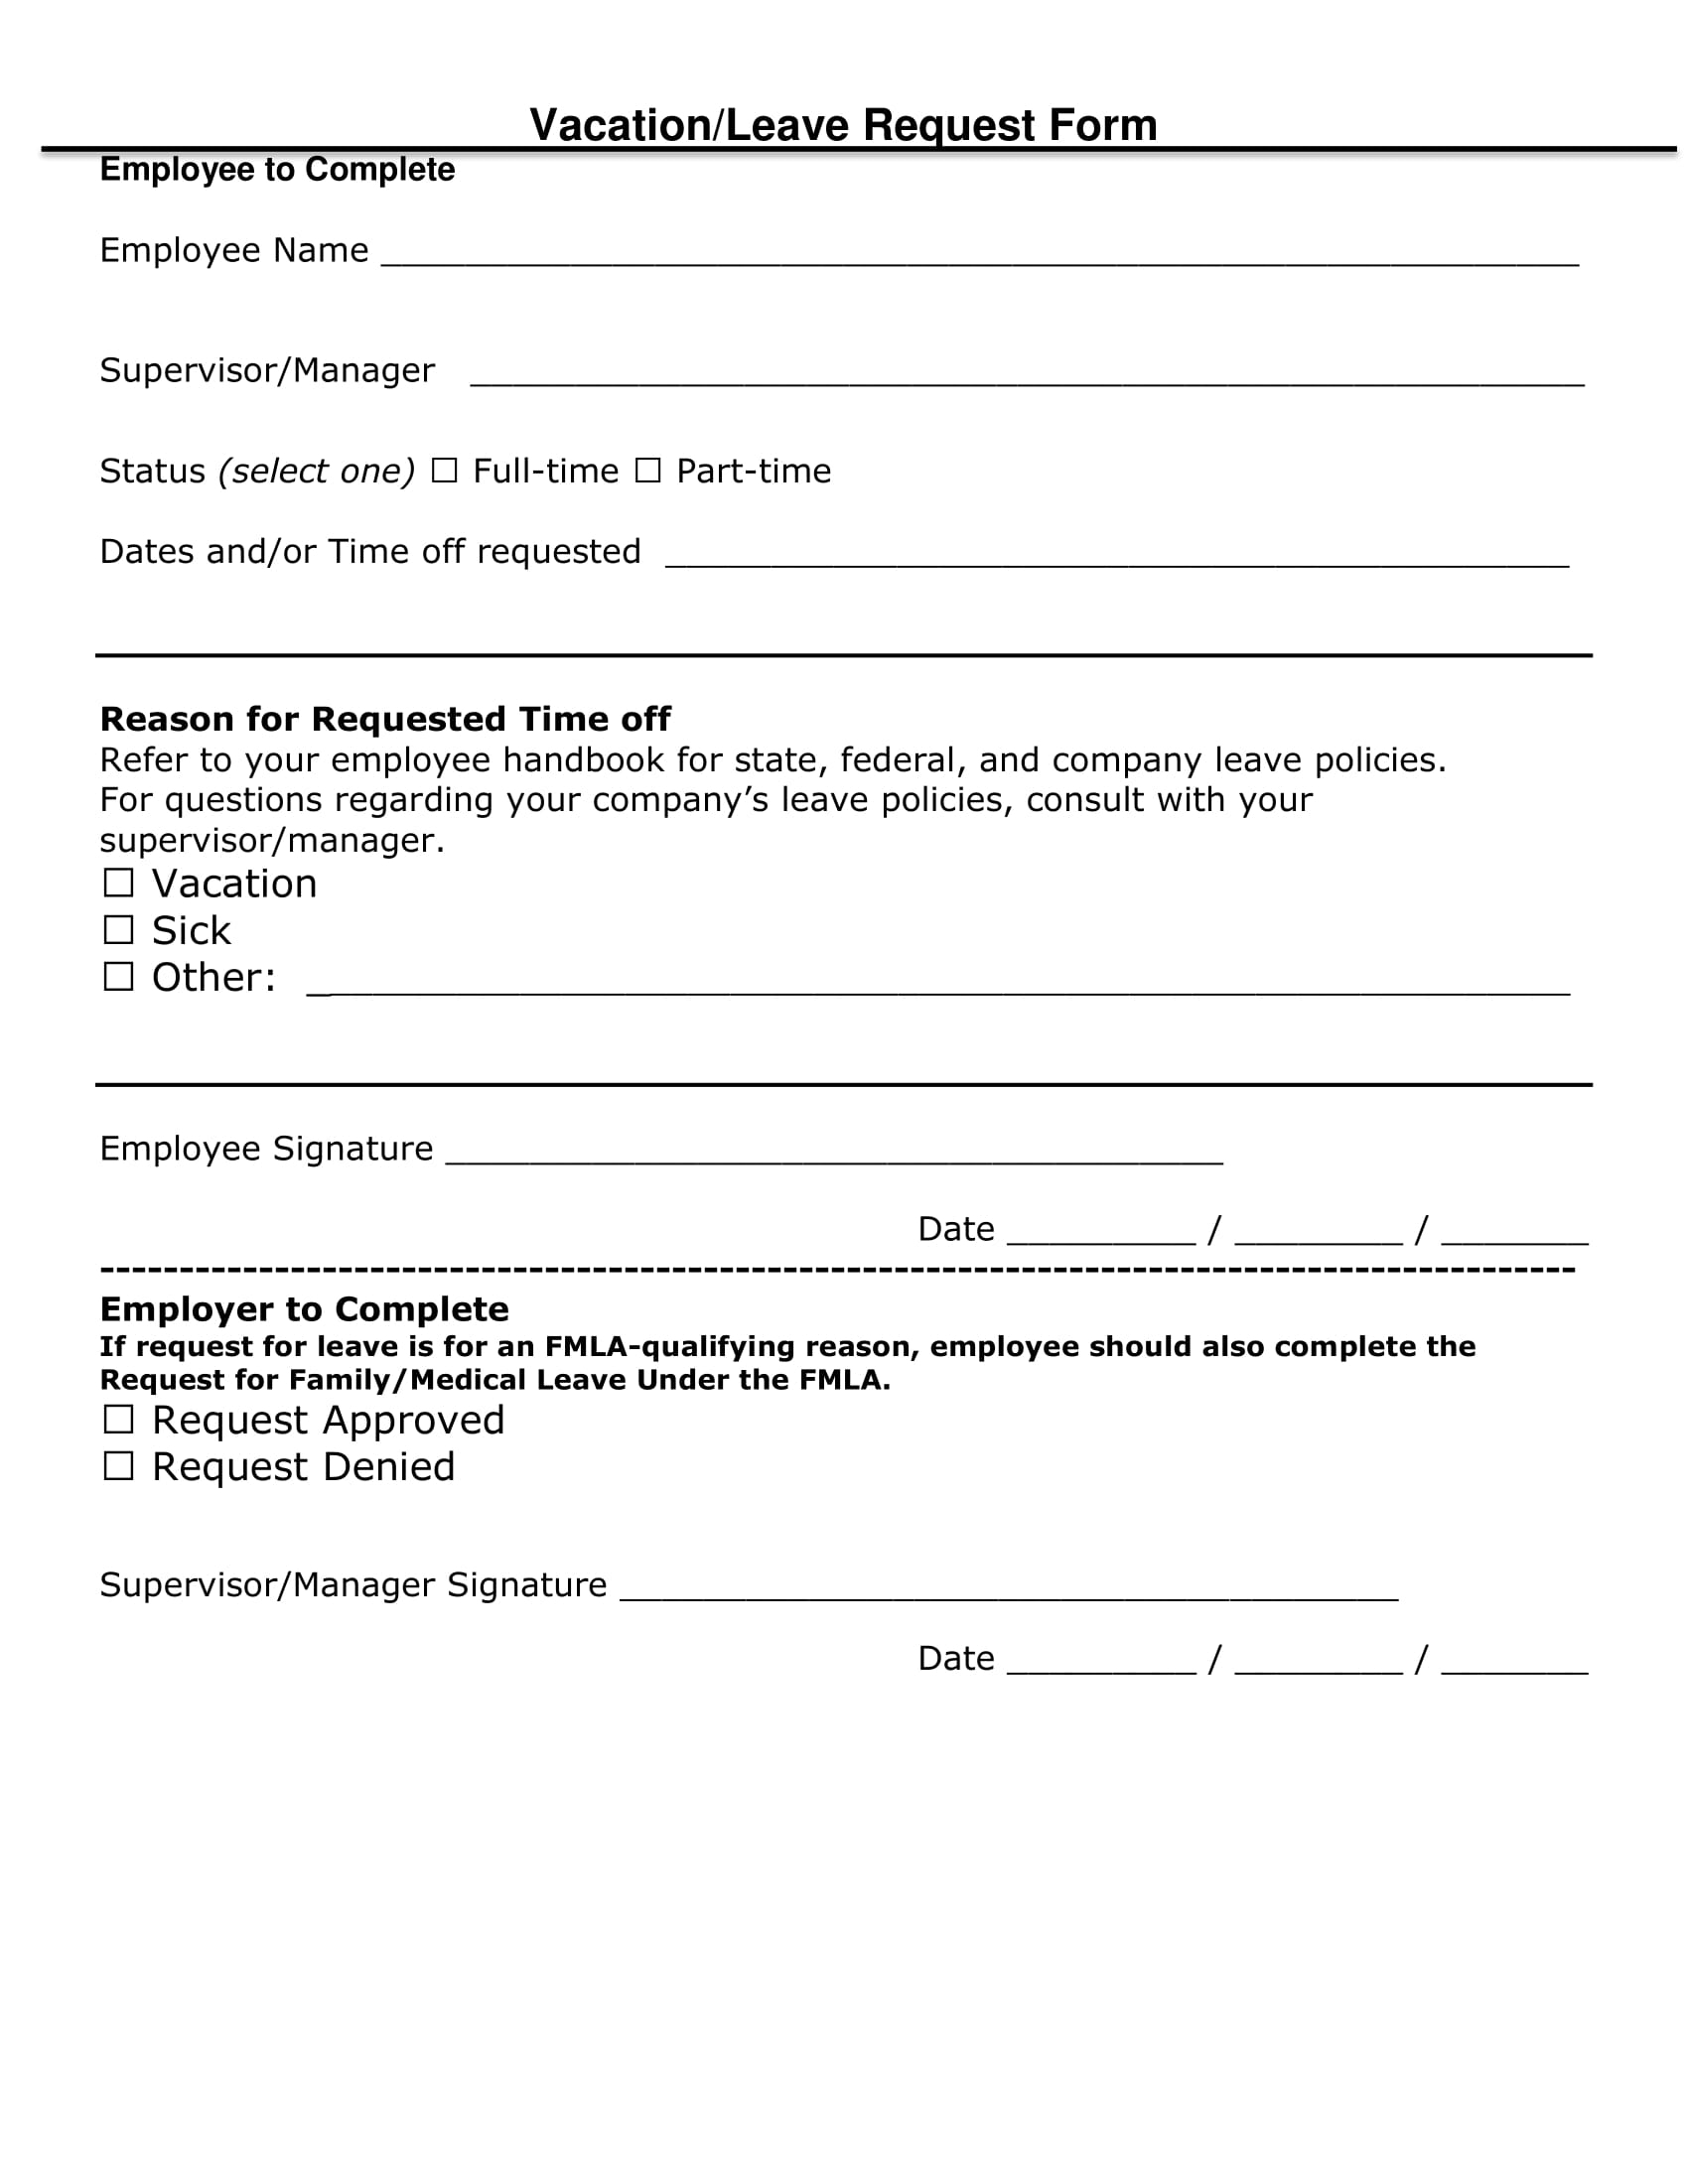 vacation leave request form